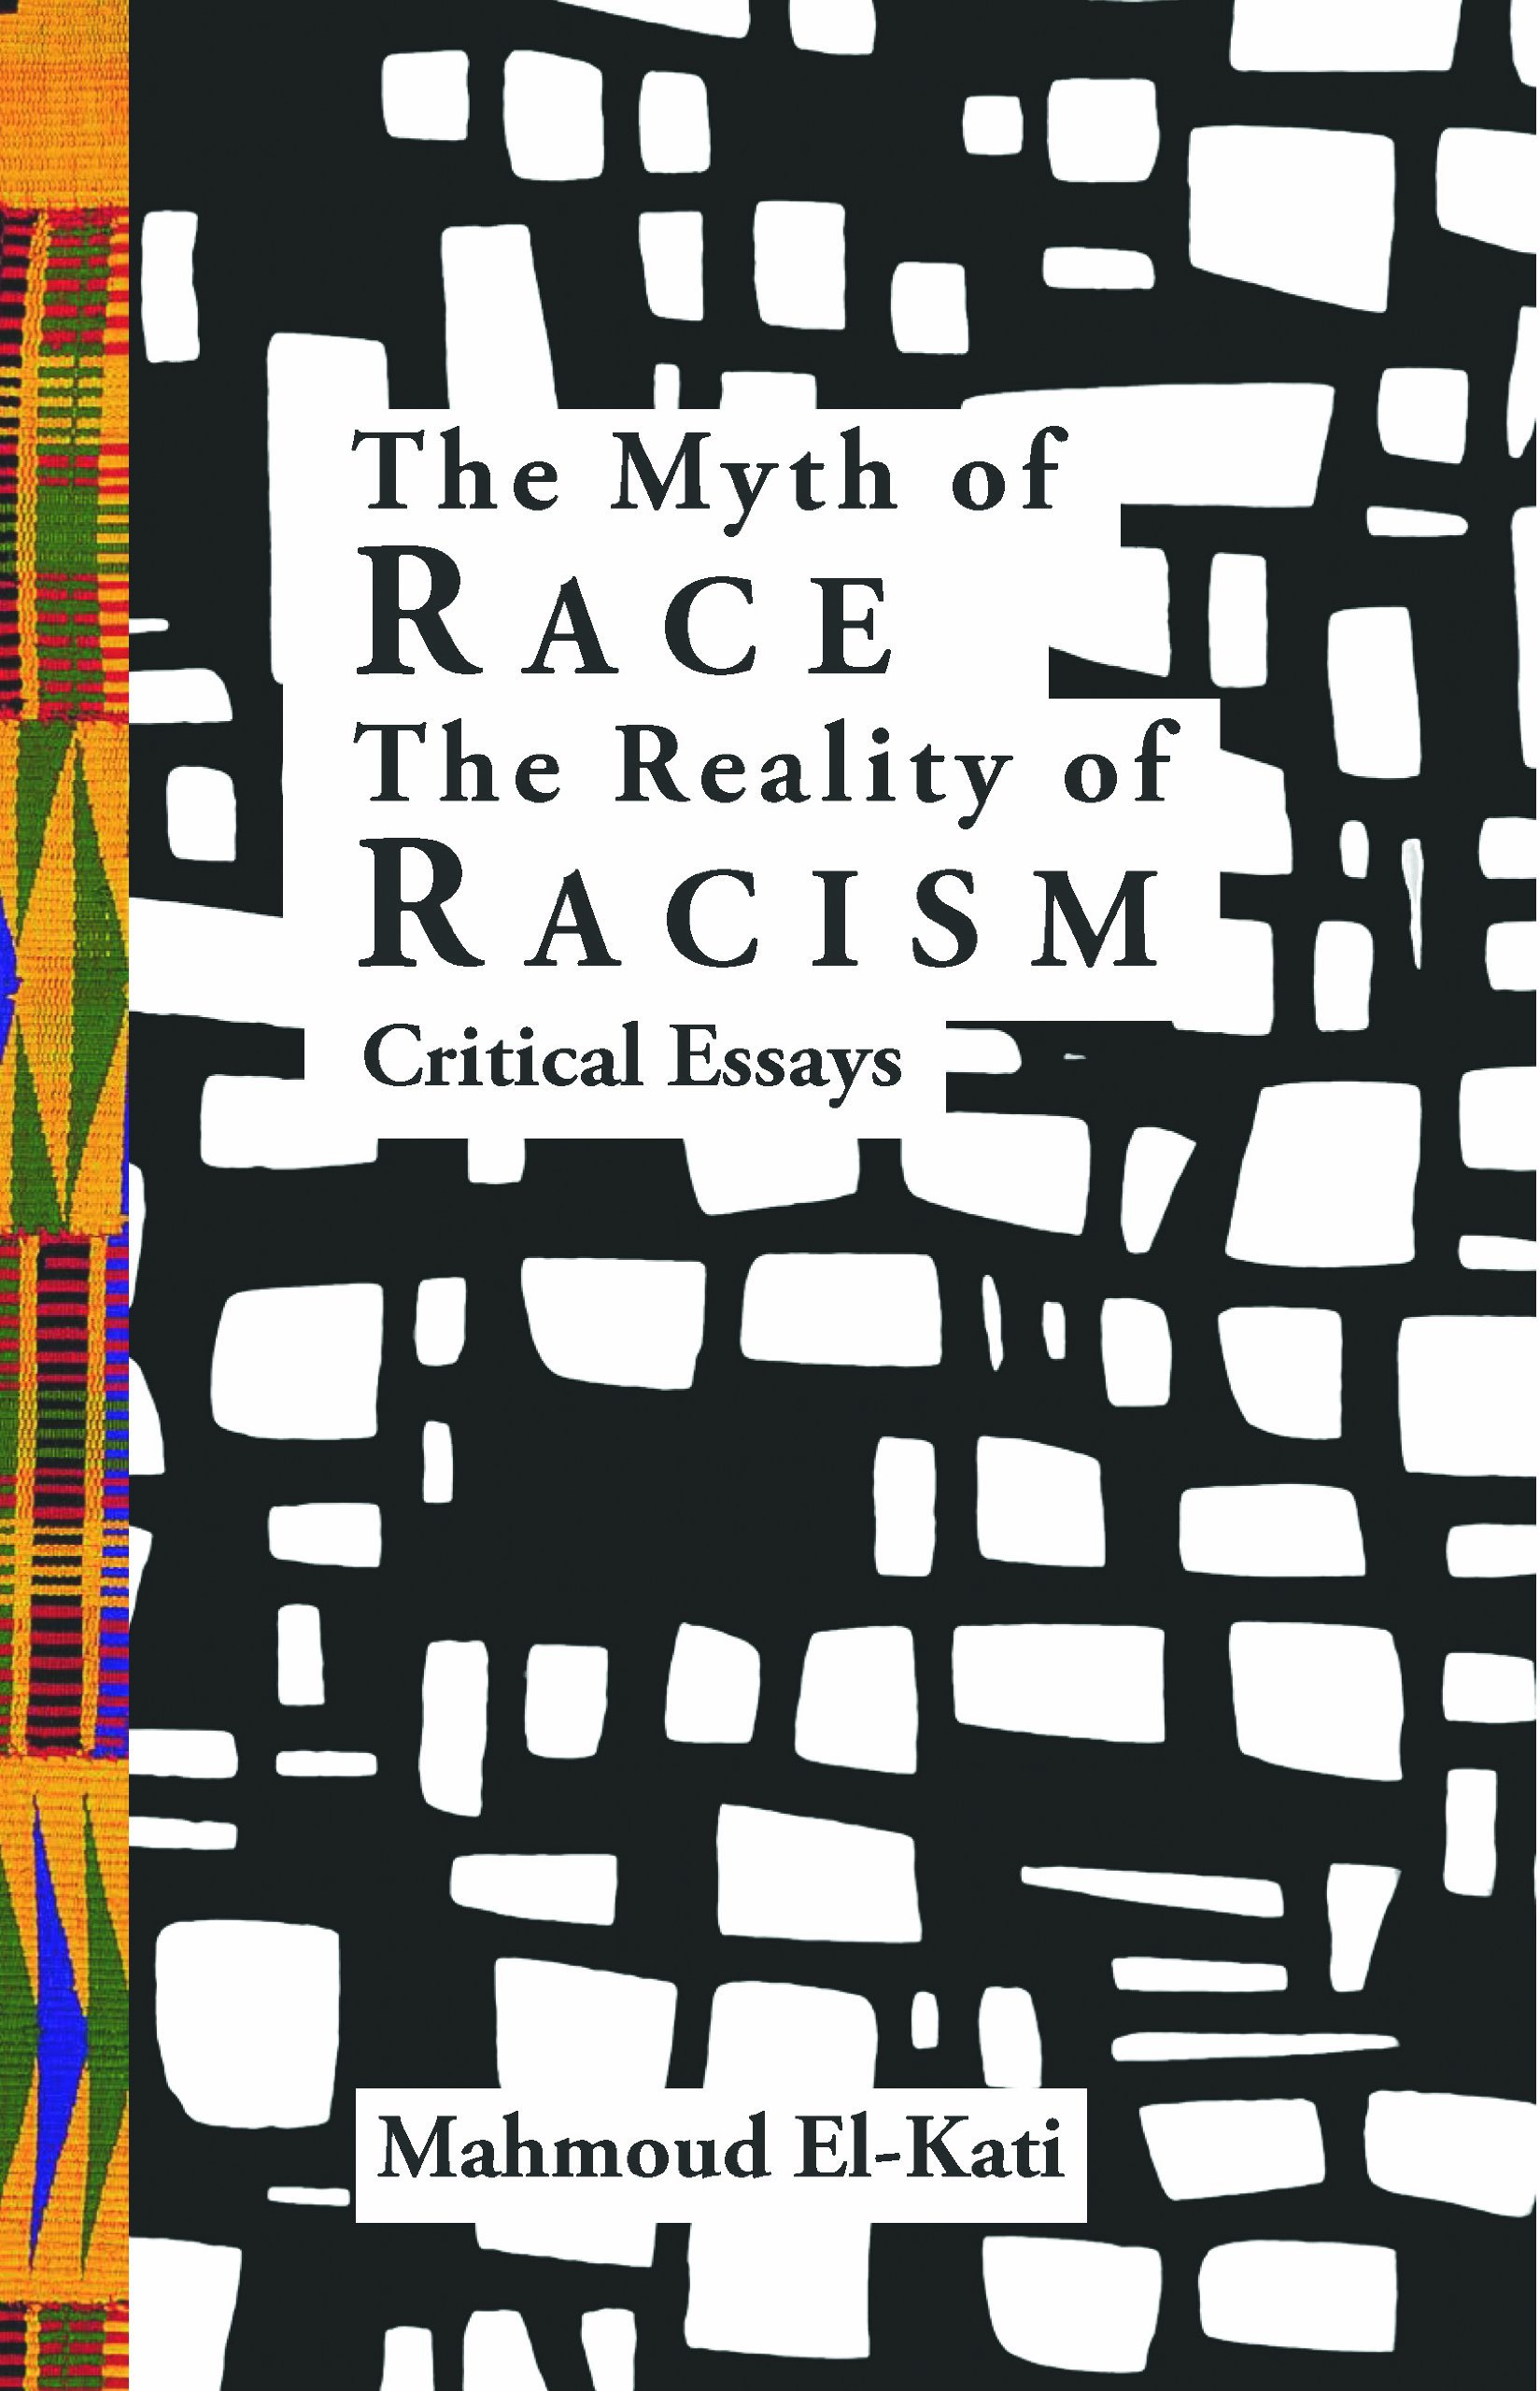 the myth of race the reality of racism critical essays mahmoud the myth of race the reality of racism critical essays mahmoud el kati 9780988288331 com books